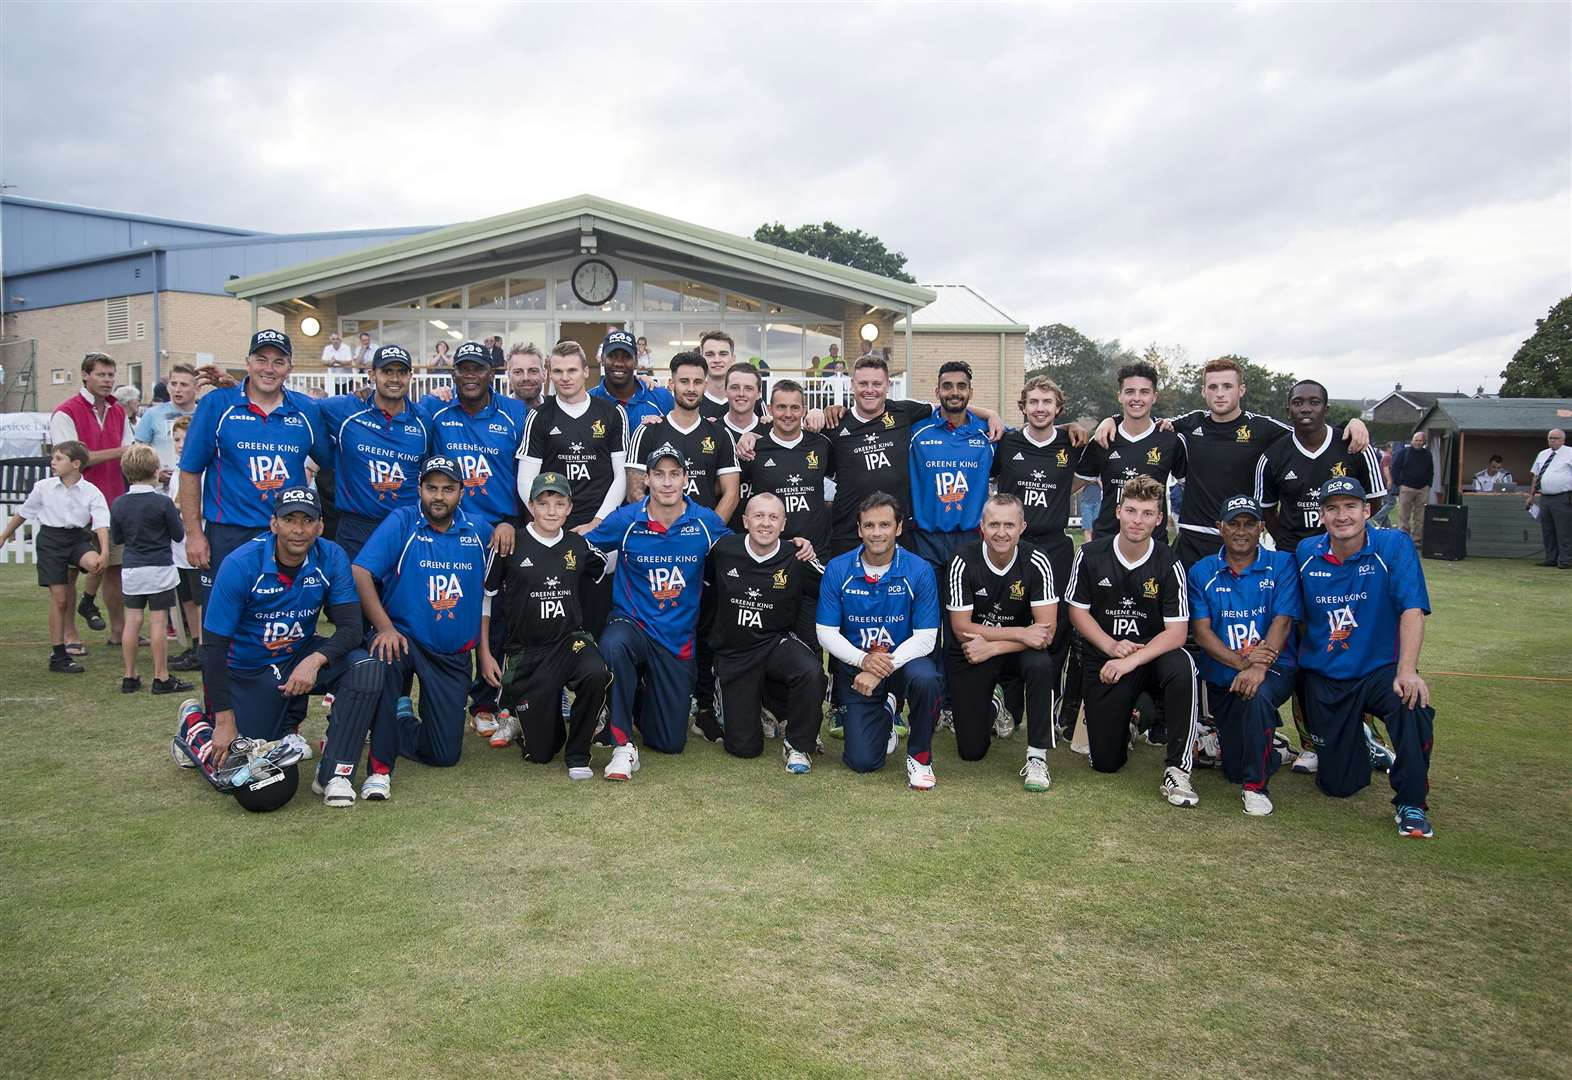 Former England cricketers to return to the Victory Ground